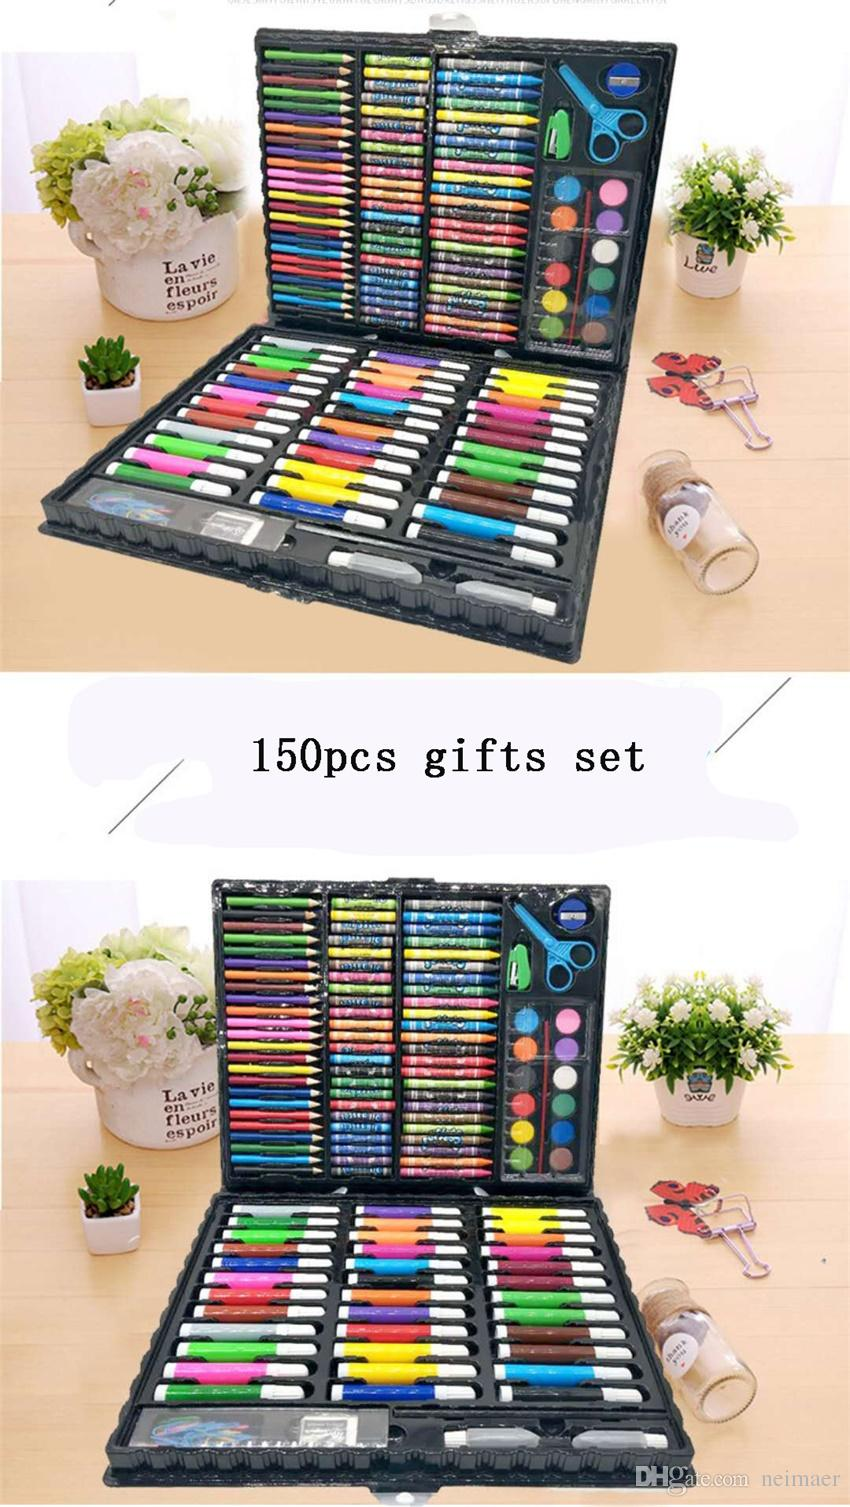 Stationery set children's painting art supplies,Drawing Coloring Drawing Pen Watercolor pen Crayon Coloured pencils Oil paintings Suit